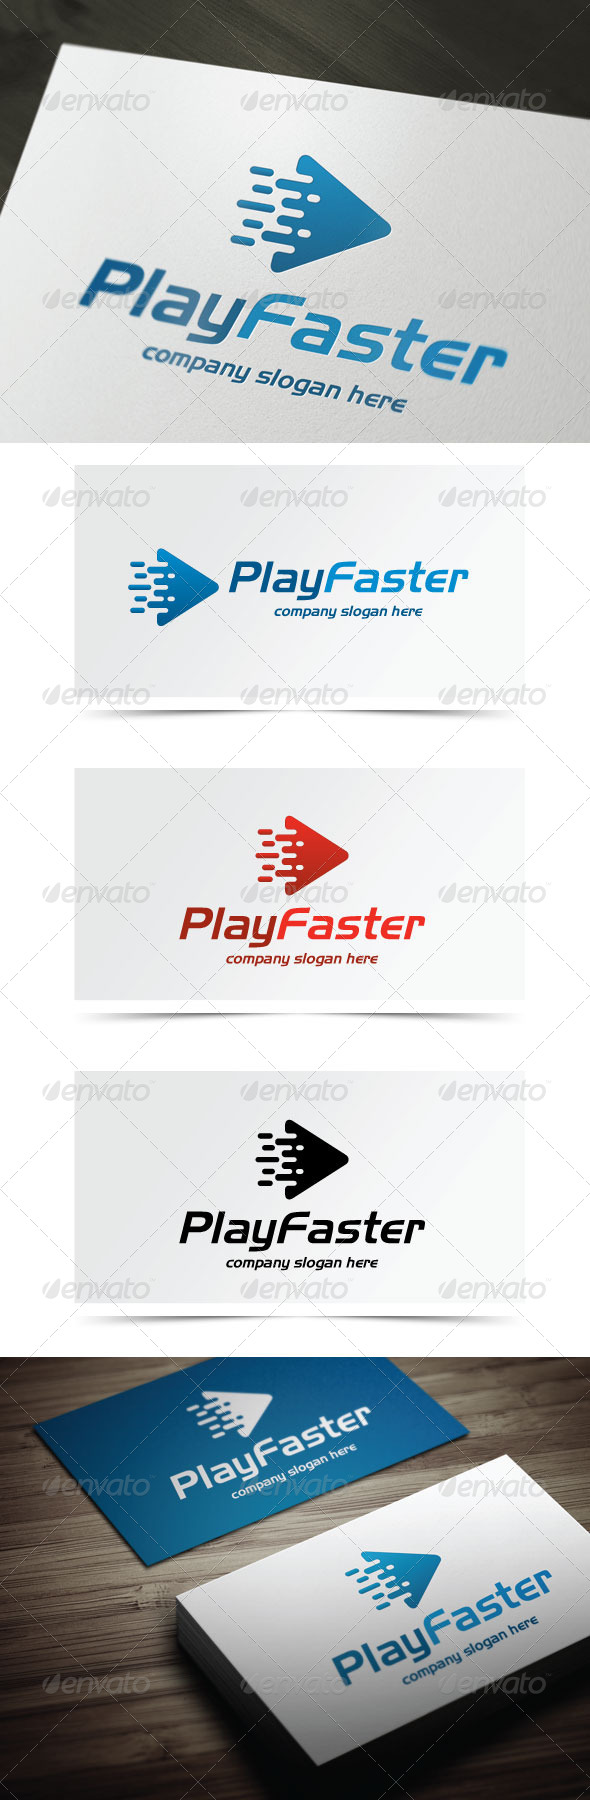 GraphicRiver Play Faster 5444999